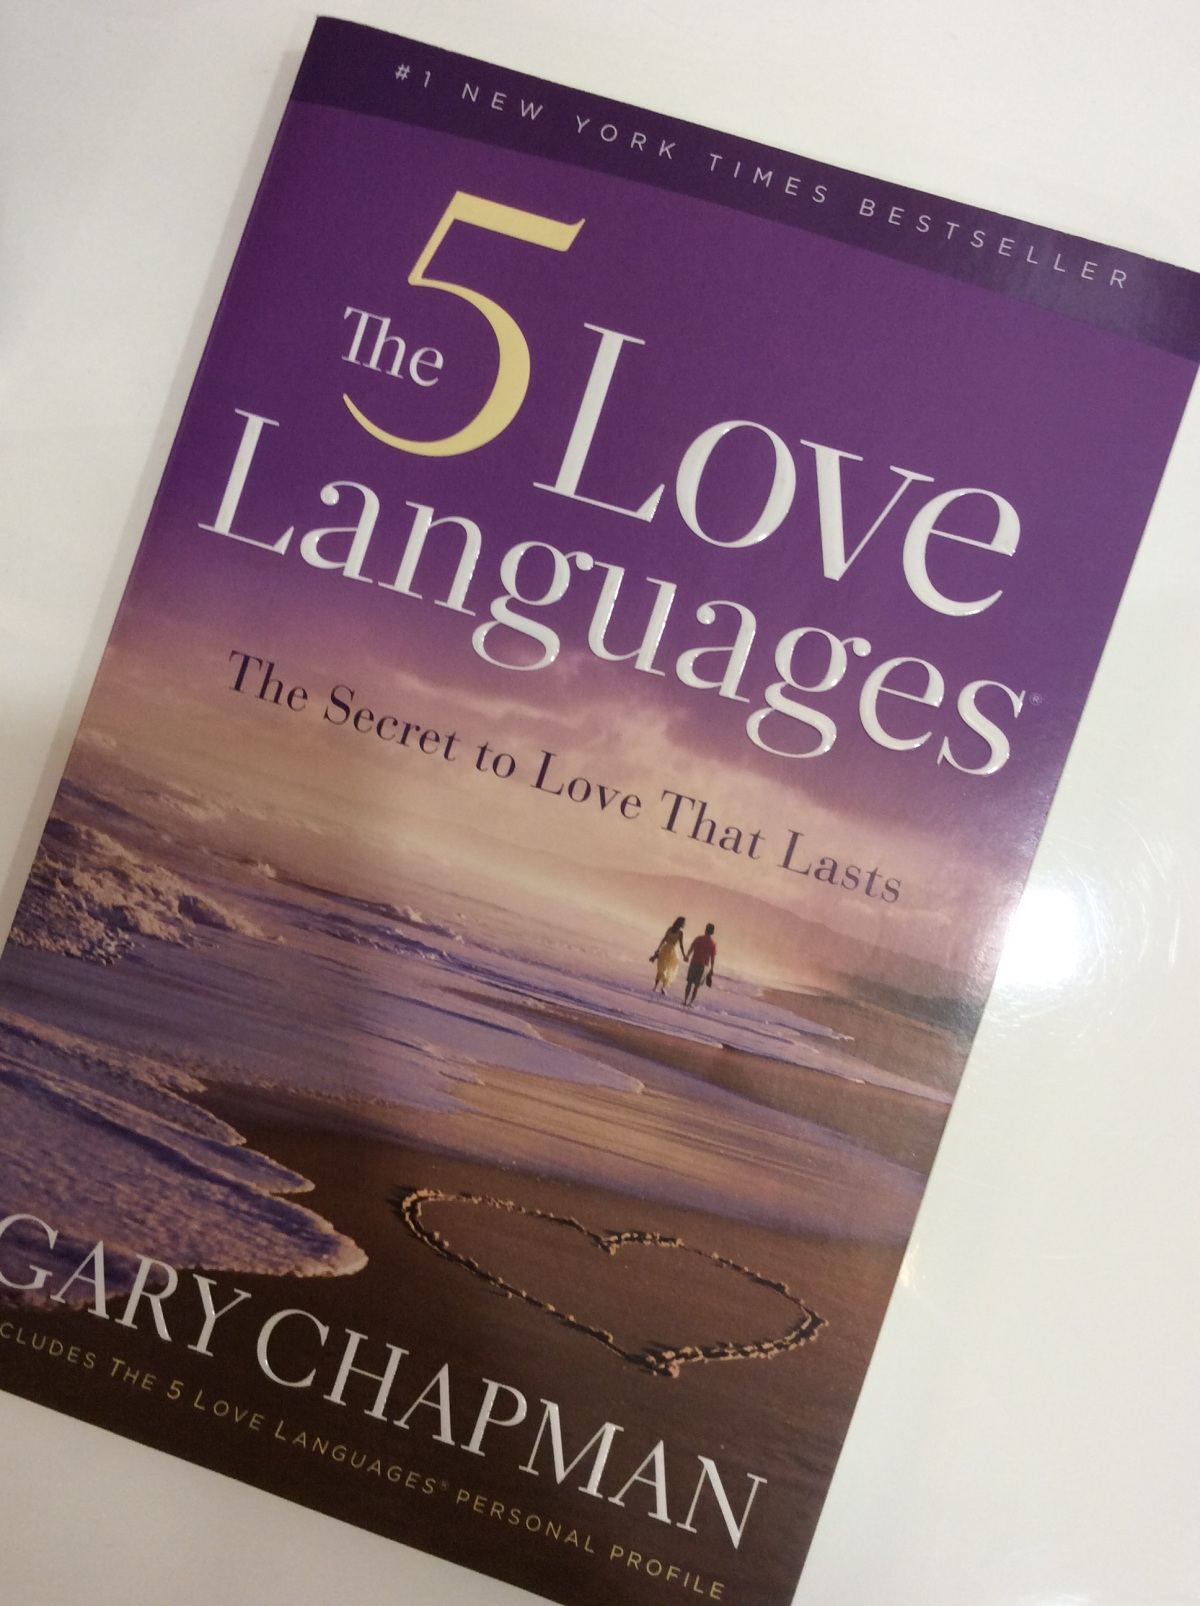 The 5 Love Languages – Dr. Gary Chapman's